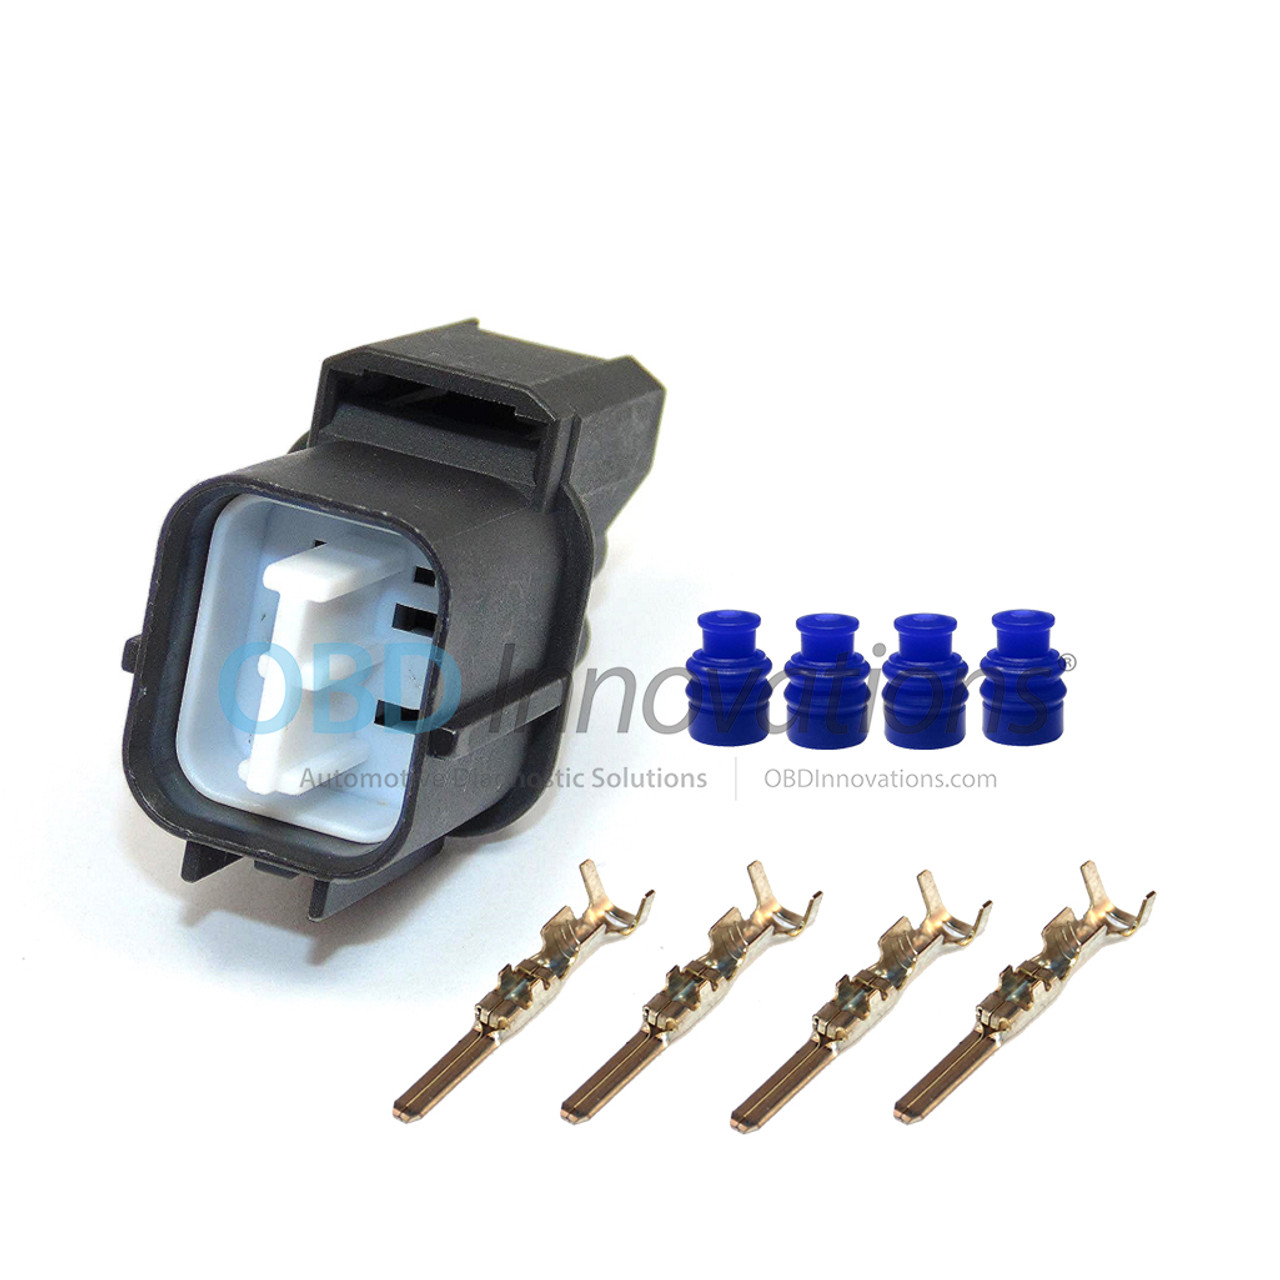 o2 oxygen sensor male connector harness kit for 4 wire